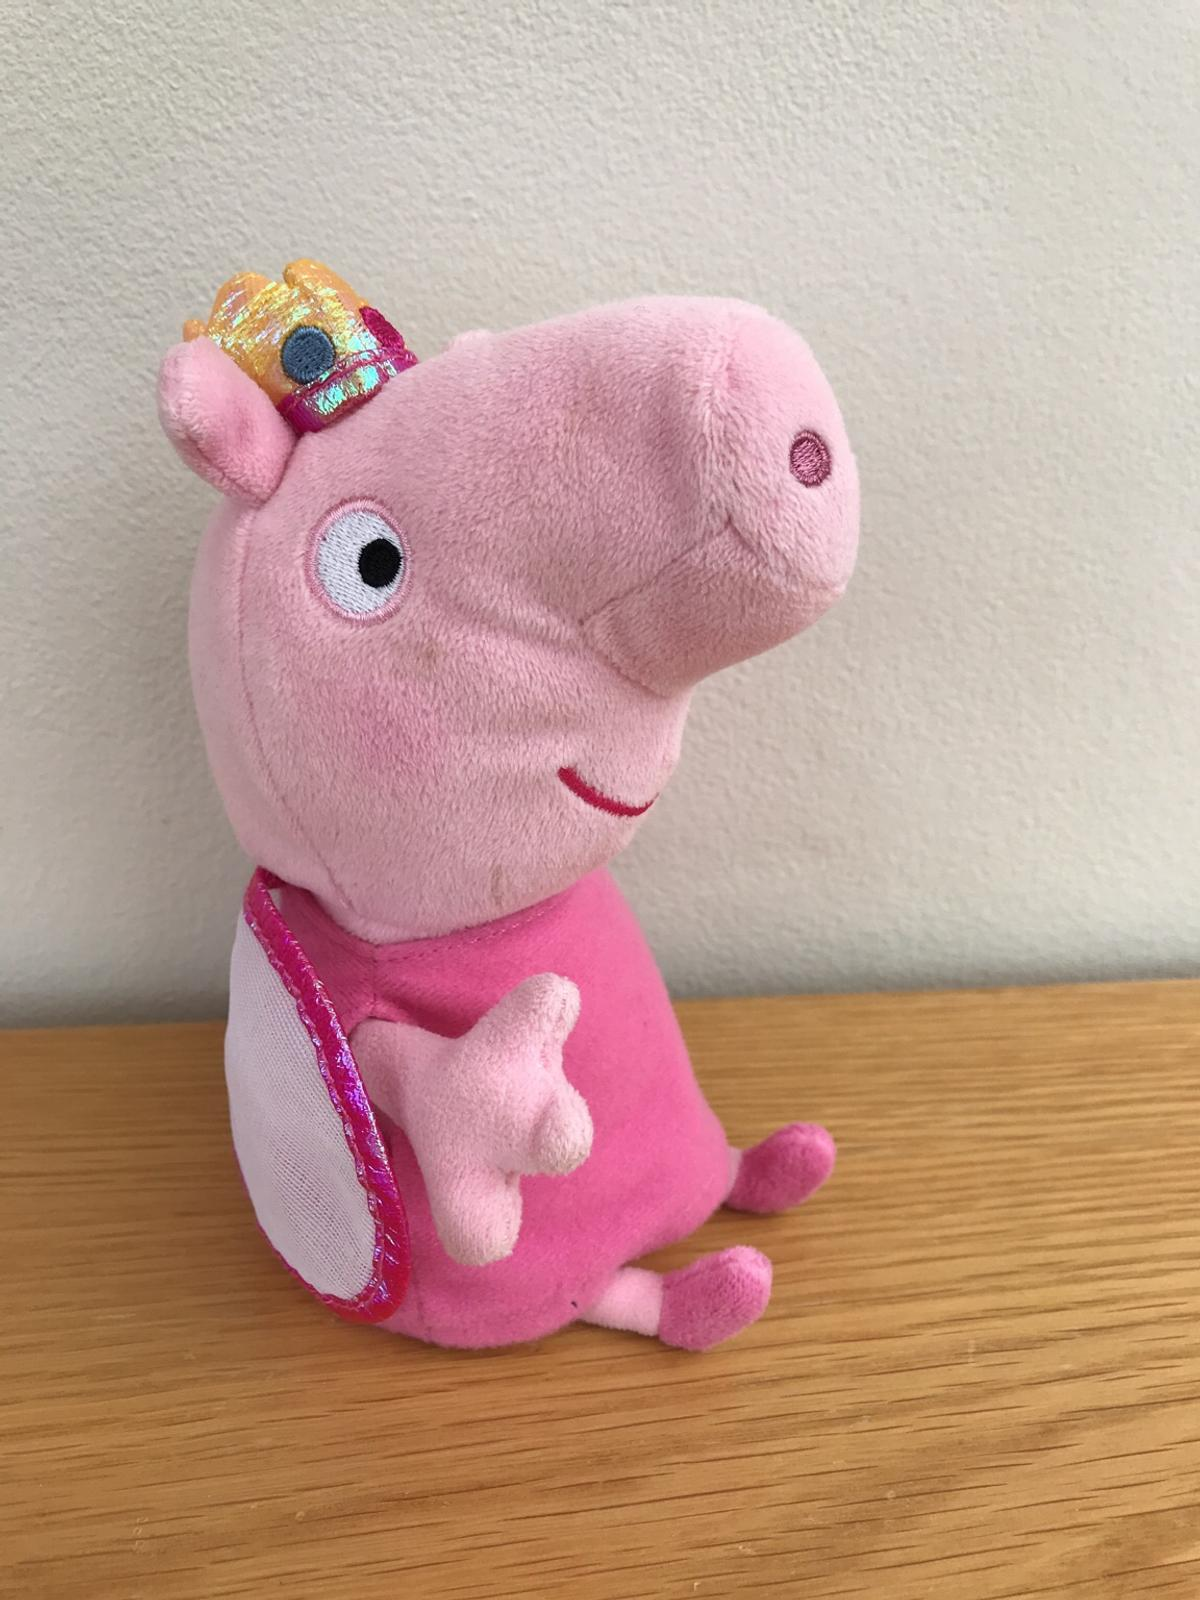 Princess Peppa Beanie In Maidstone For 1 00 For Sale Shpock